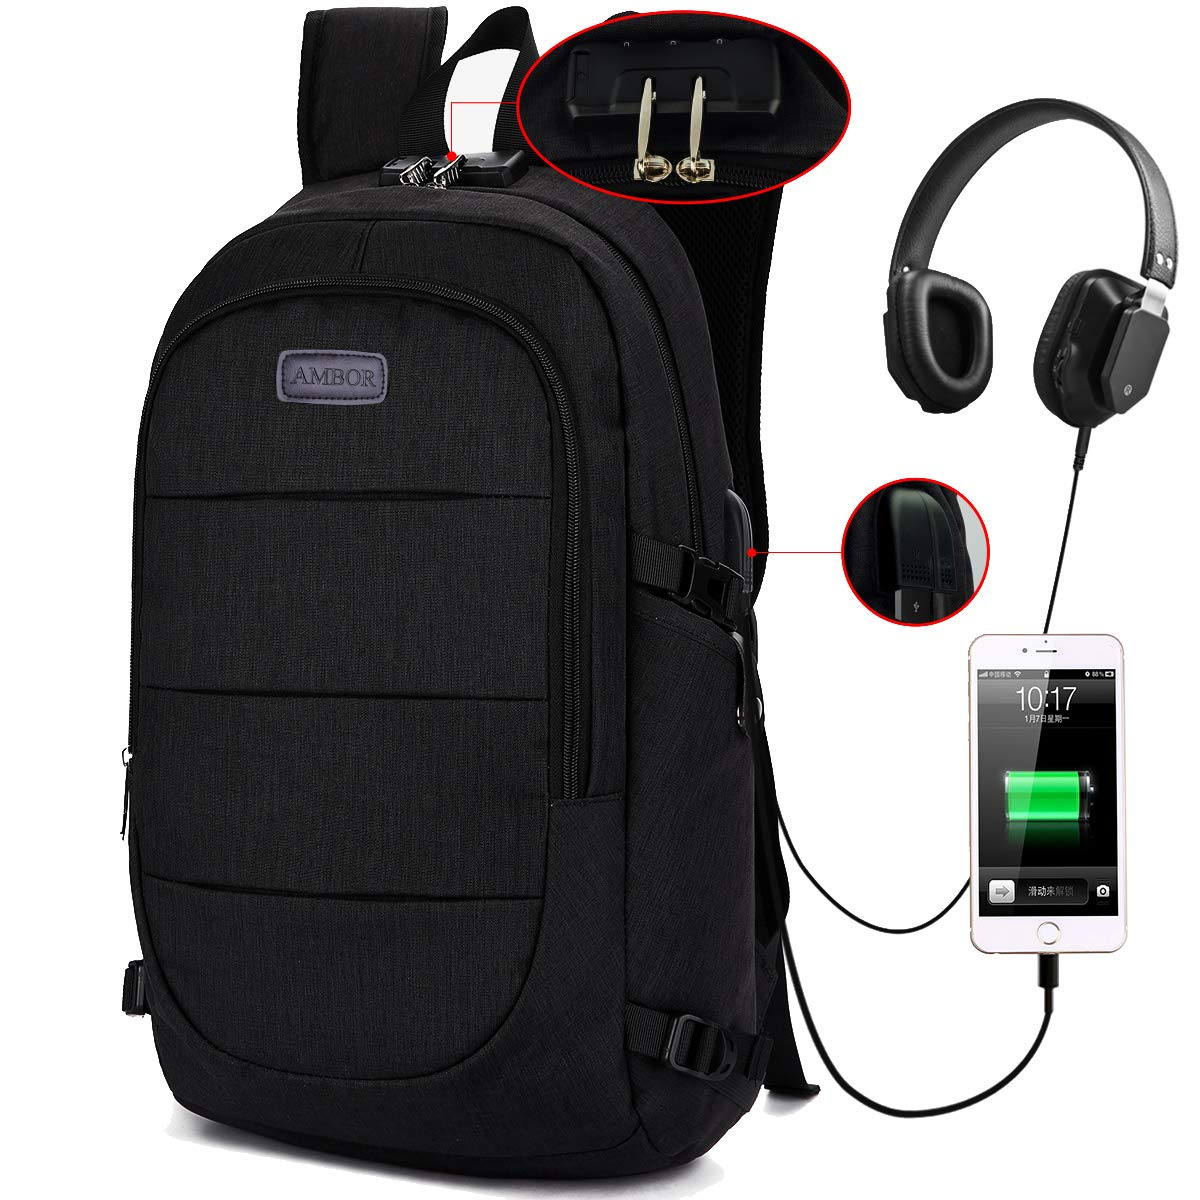 AMBOR Travel Laptop Backpack, Anti Theft Business Waterproof Laptop Backpack with USB Charging Port and Headphone Interface fits Under 15.6'' Laptop, for College Student Work Men & Women.Black